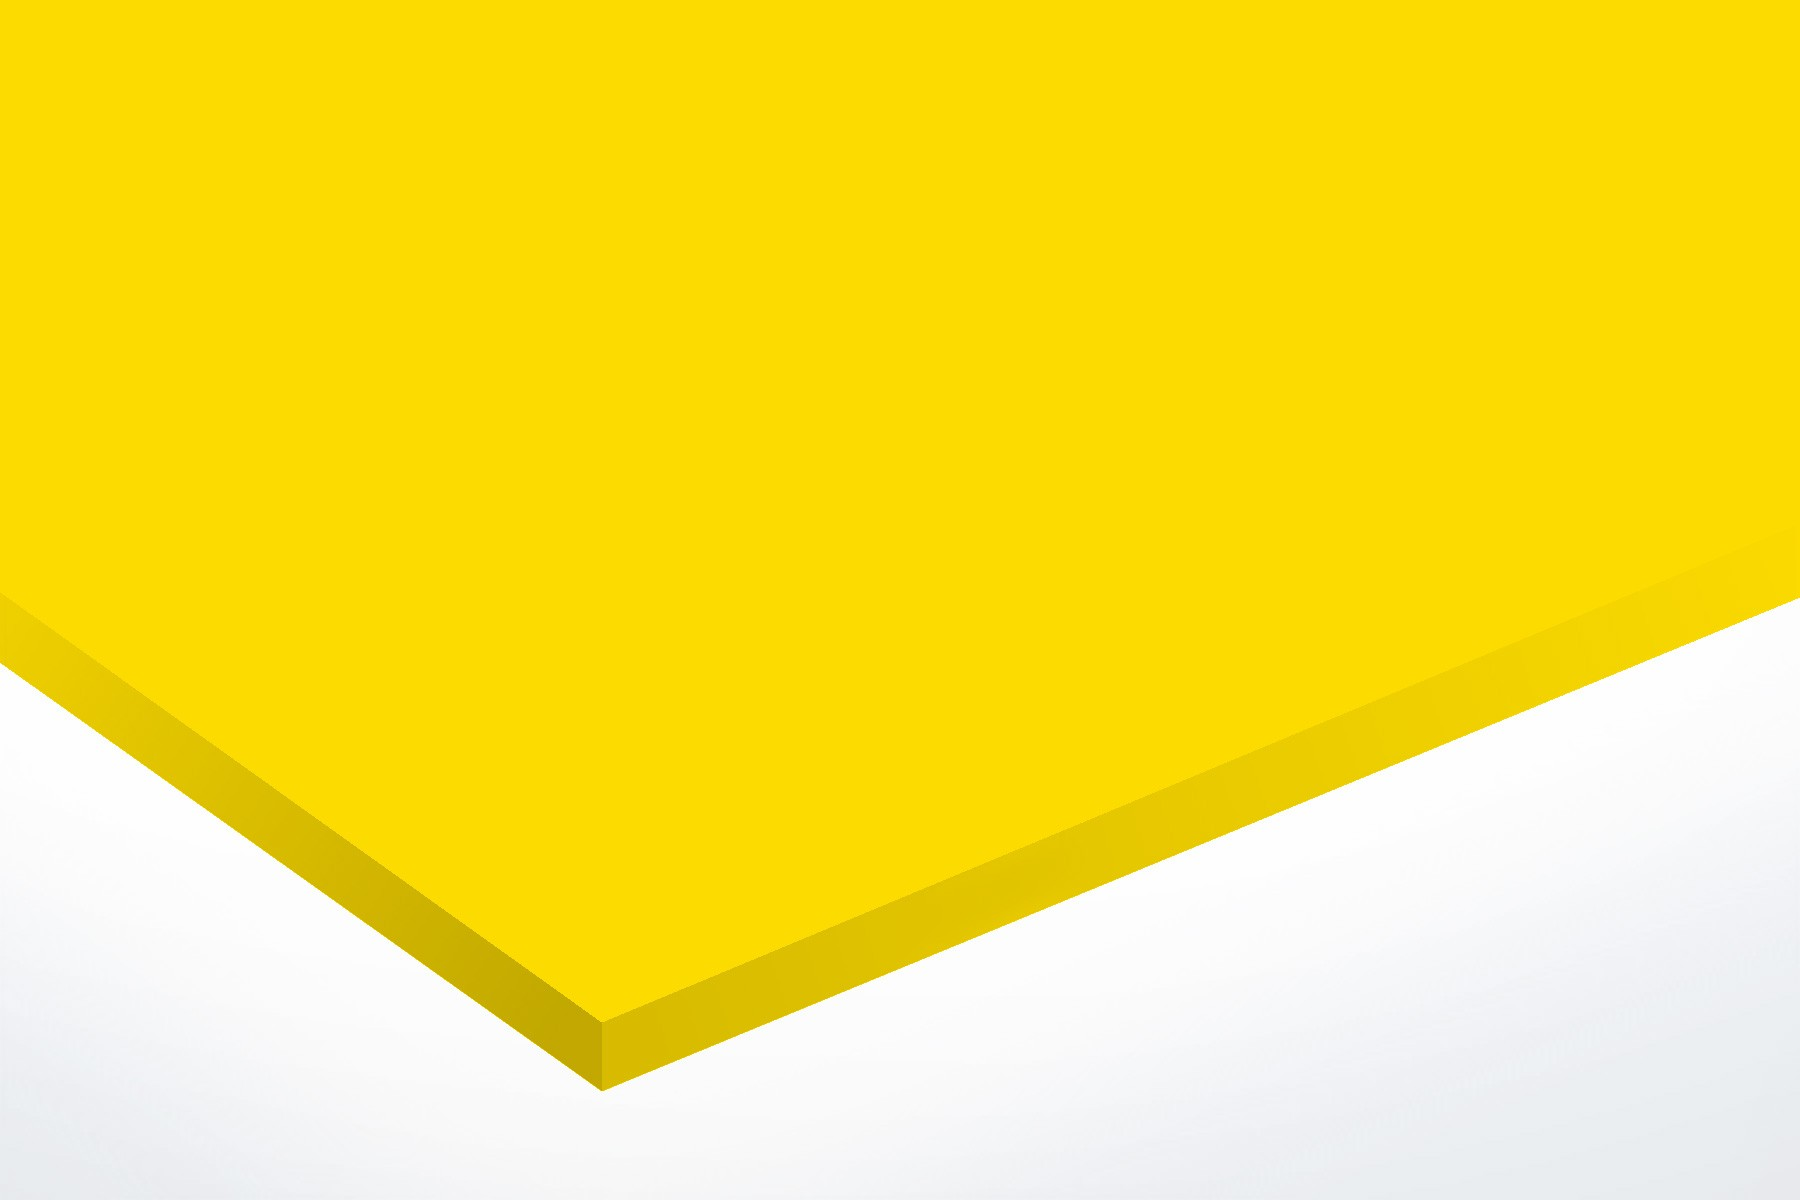 TroLase ADA Signage, Yellow, 1ply, 1.6 mm